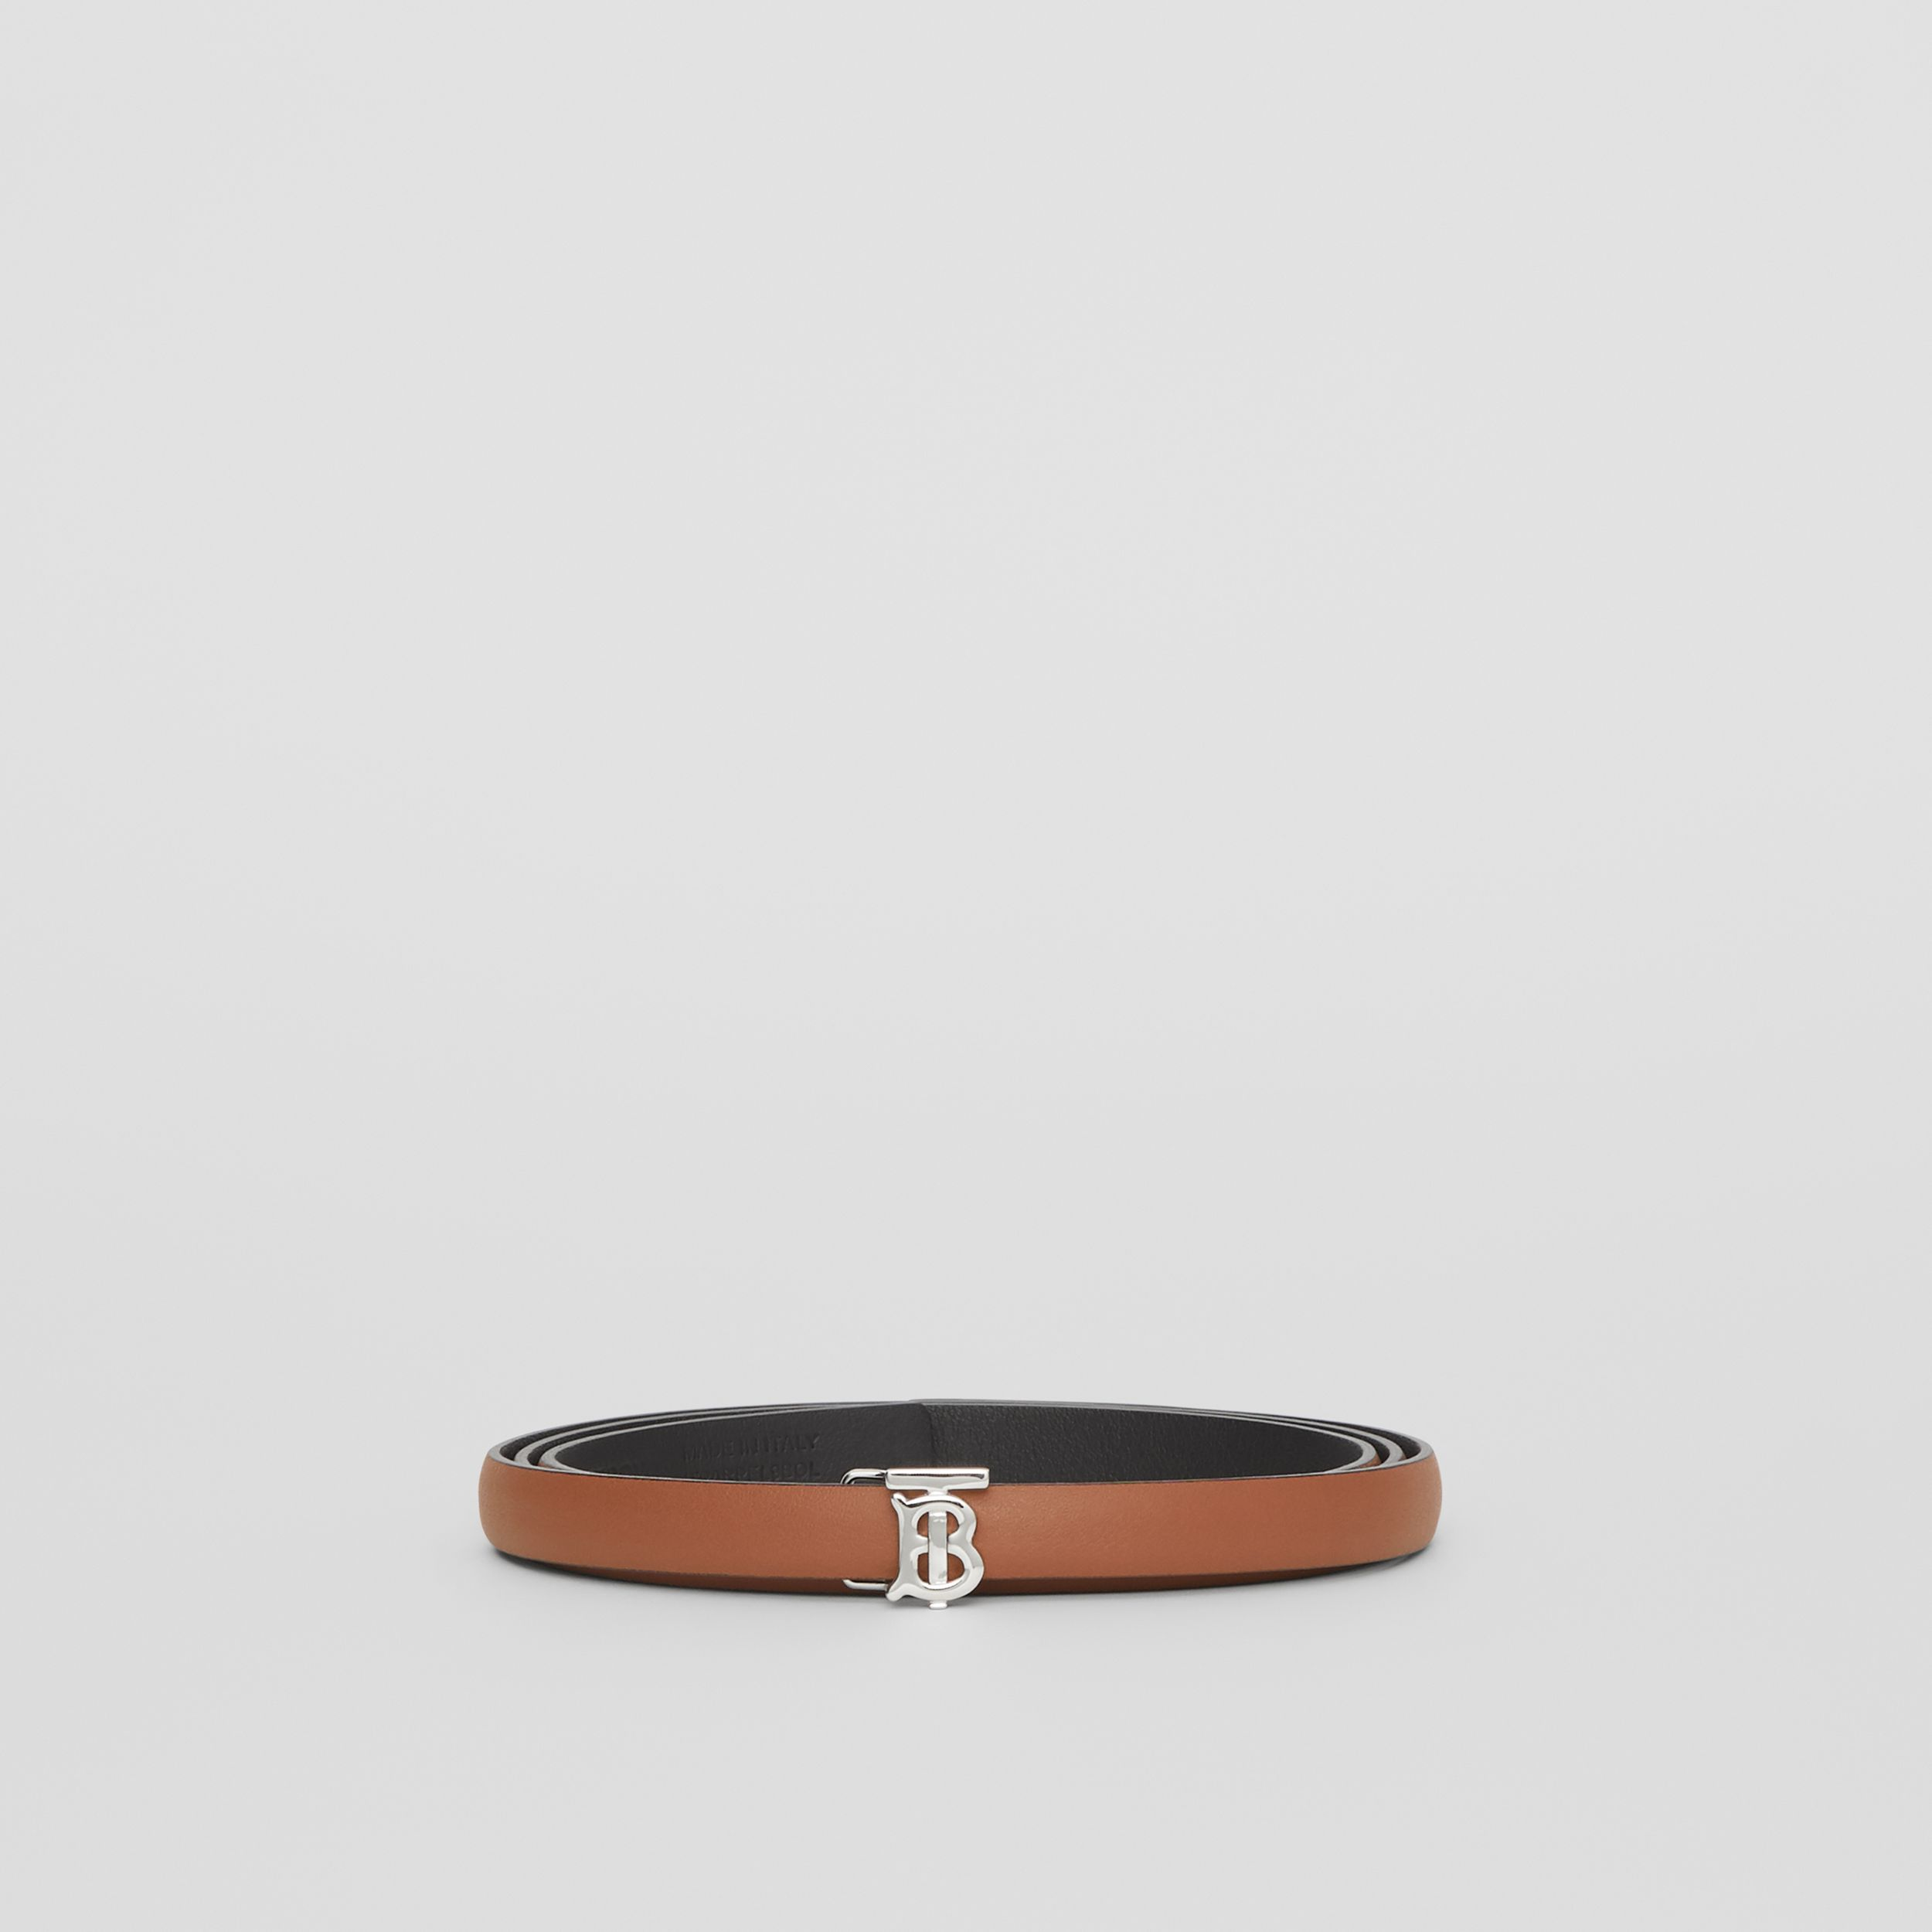 Reversible Monogram Motif Leather Wrap Belt in Malt Brown/black - Women | Burberry Australia - 4